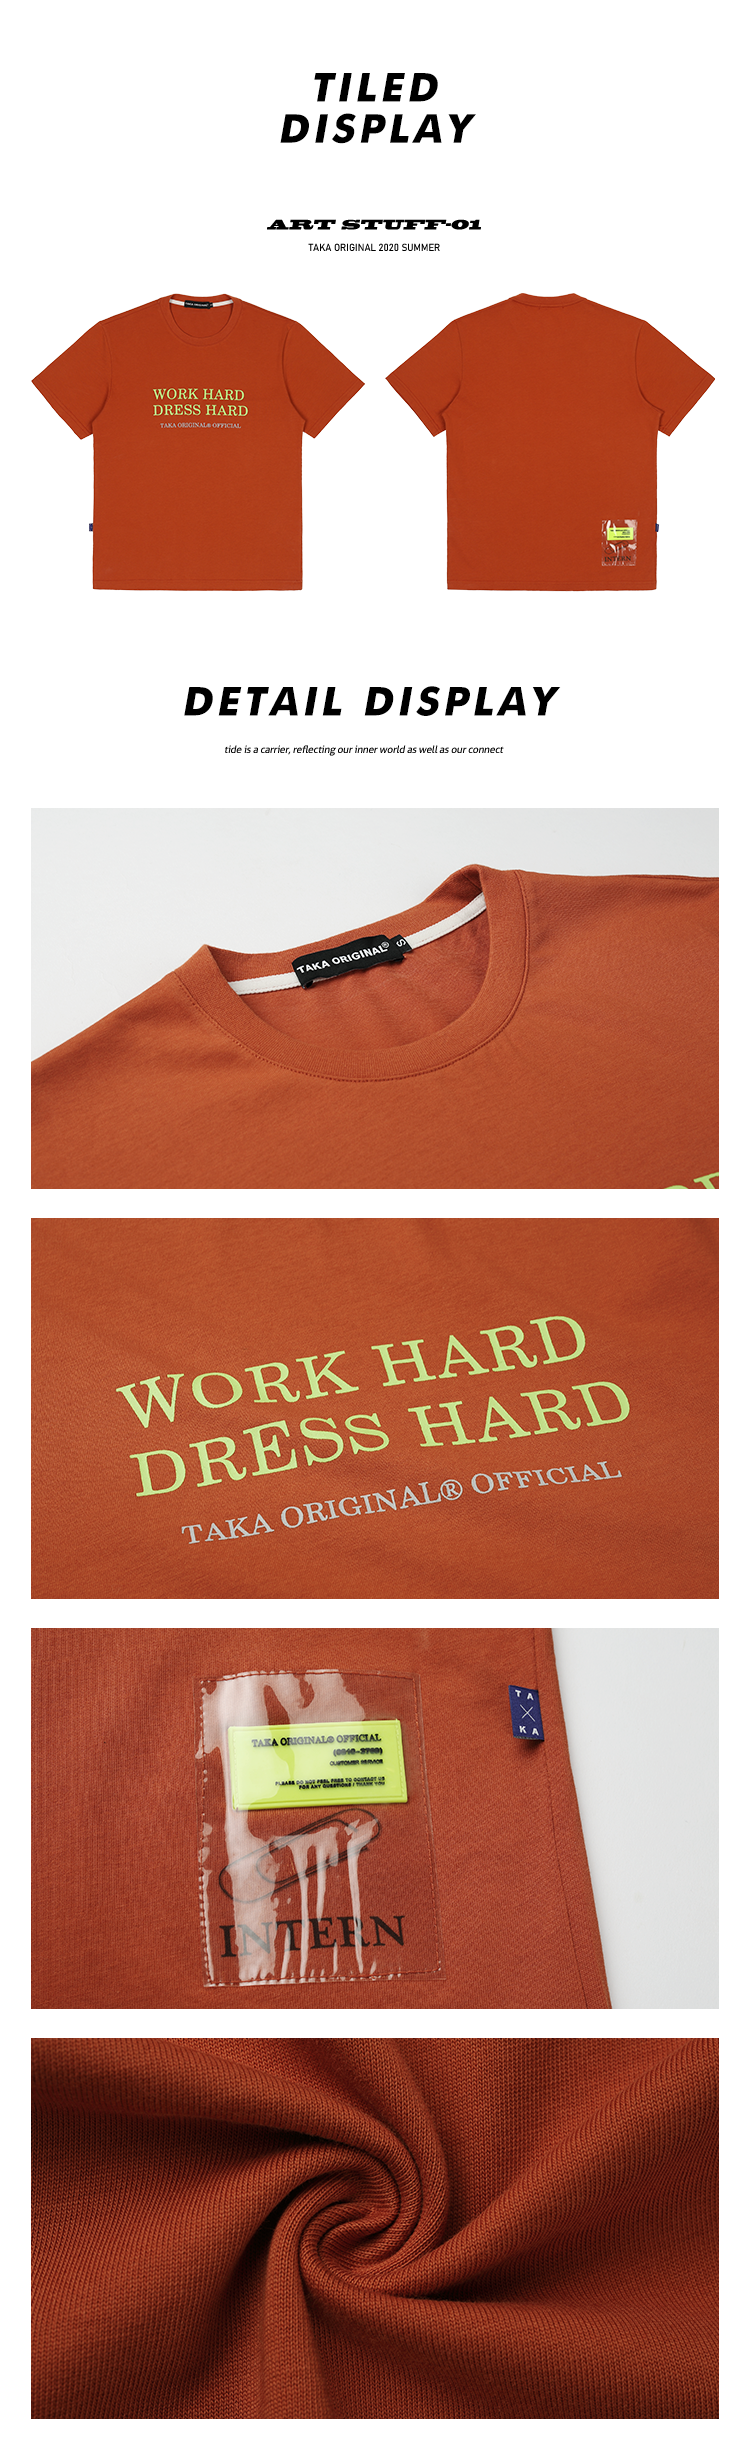 Shop taka original unisex unique original cotton short sleeves crew neck t-shirt in a wide range of styles and colors designed for comfort and fashion